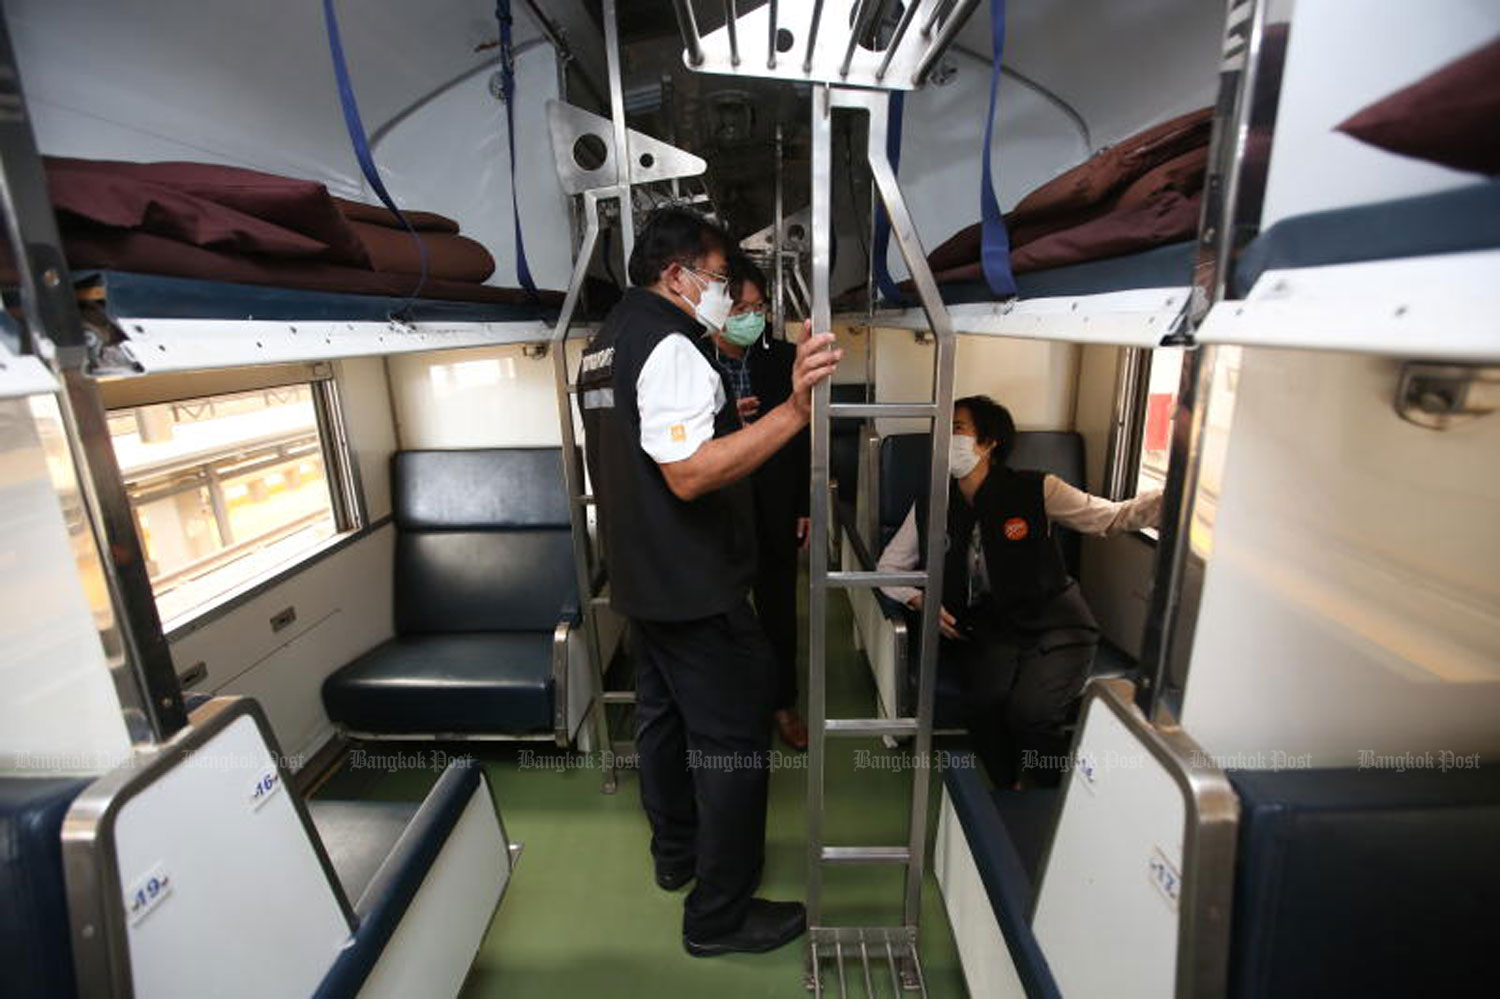 Fifteen sleeping carriages at Bang Sue Grand Station will be used as an isolation facility for Covid-19 infected people. The facility is expected to receive patients on July 30. (Photo: Pattarapong Chatpattarasill)